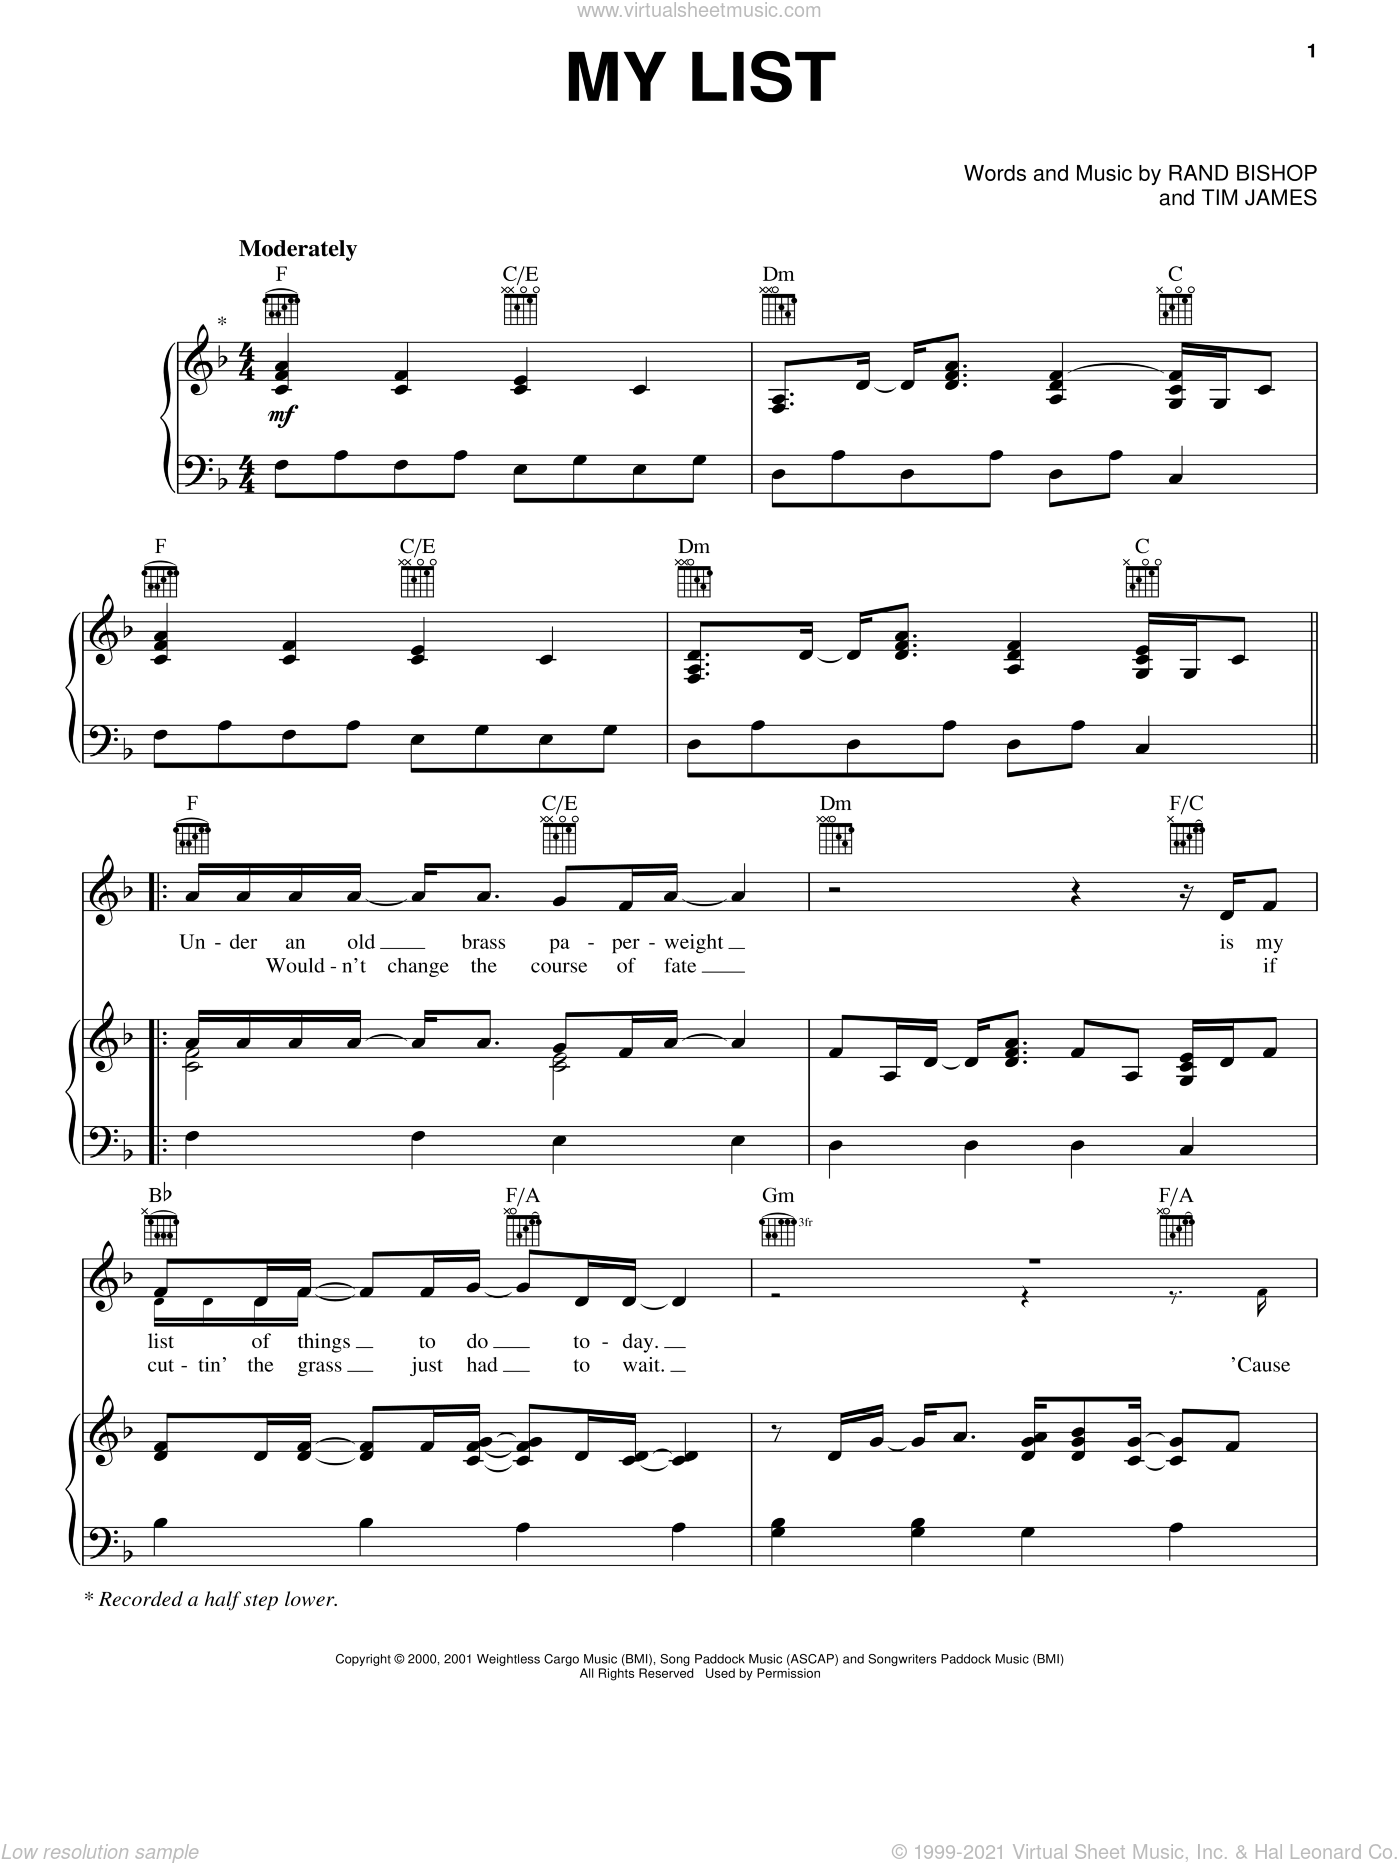 My List sheet music for voice, piano or guitar by Toby Keith, Rand Bishop and Tim James, intermediate skill level